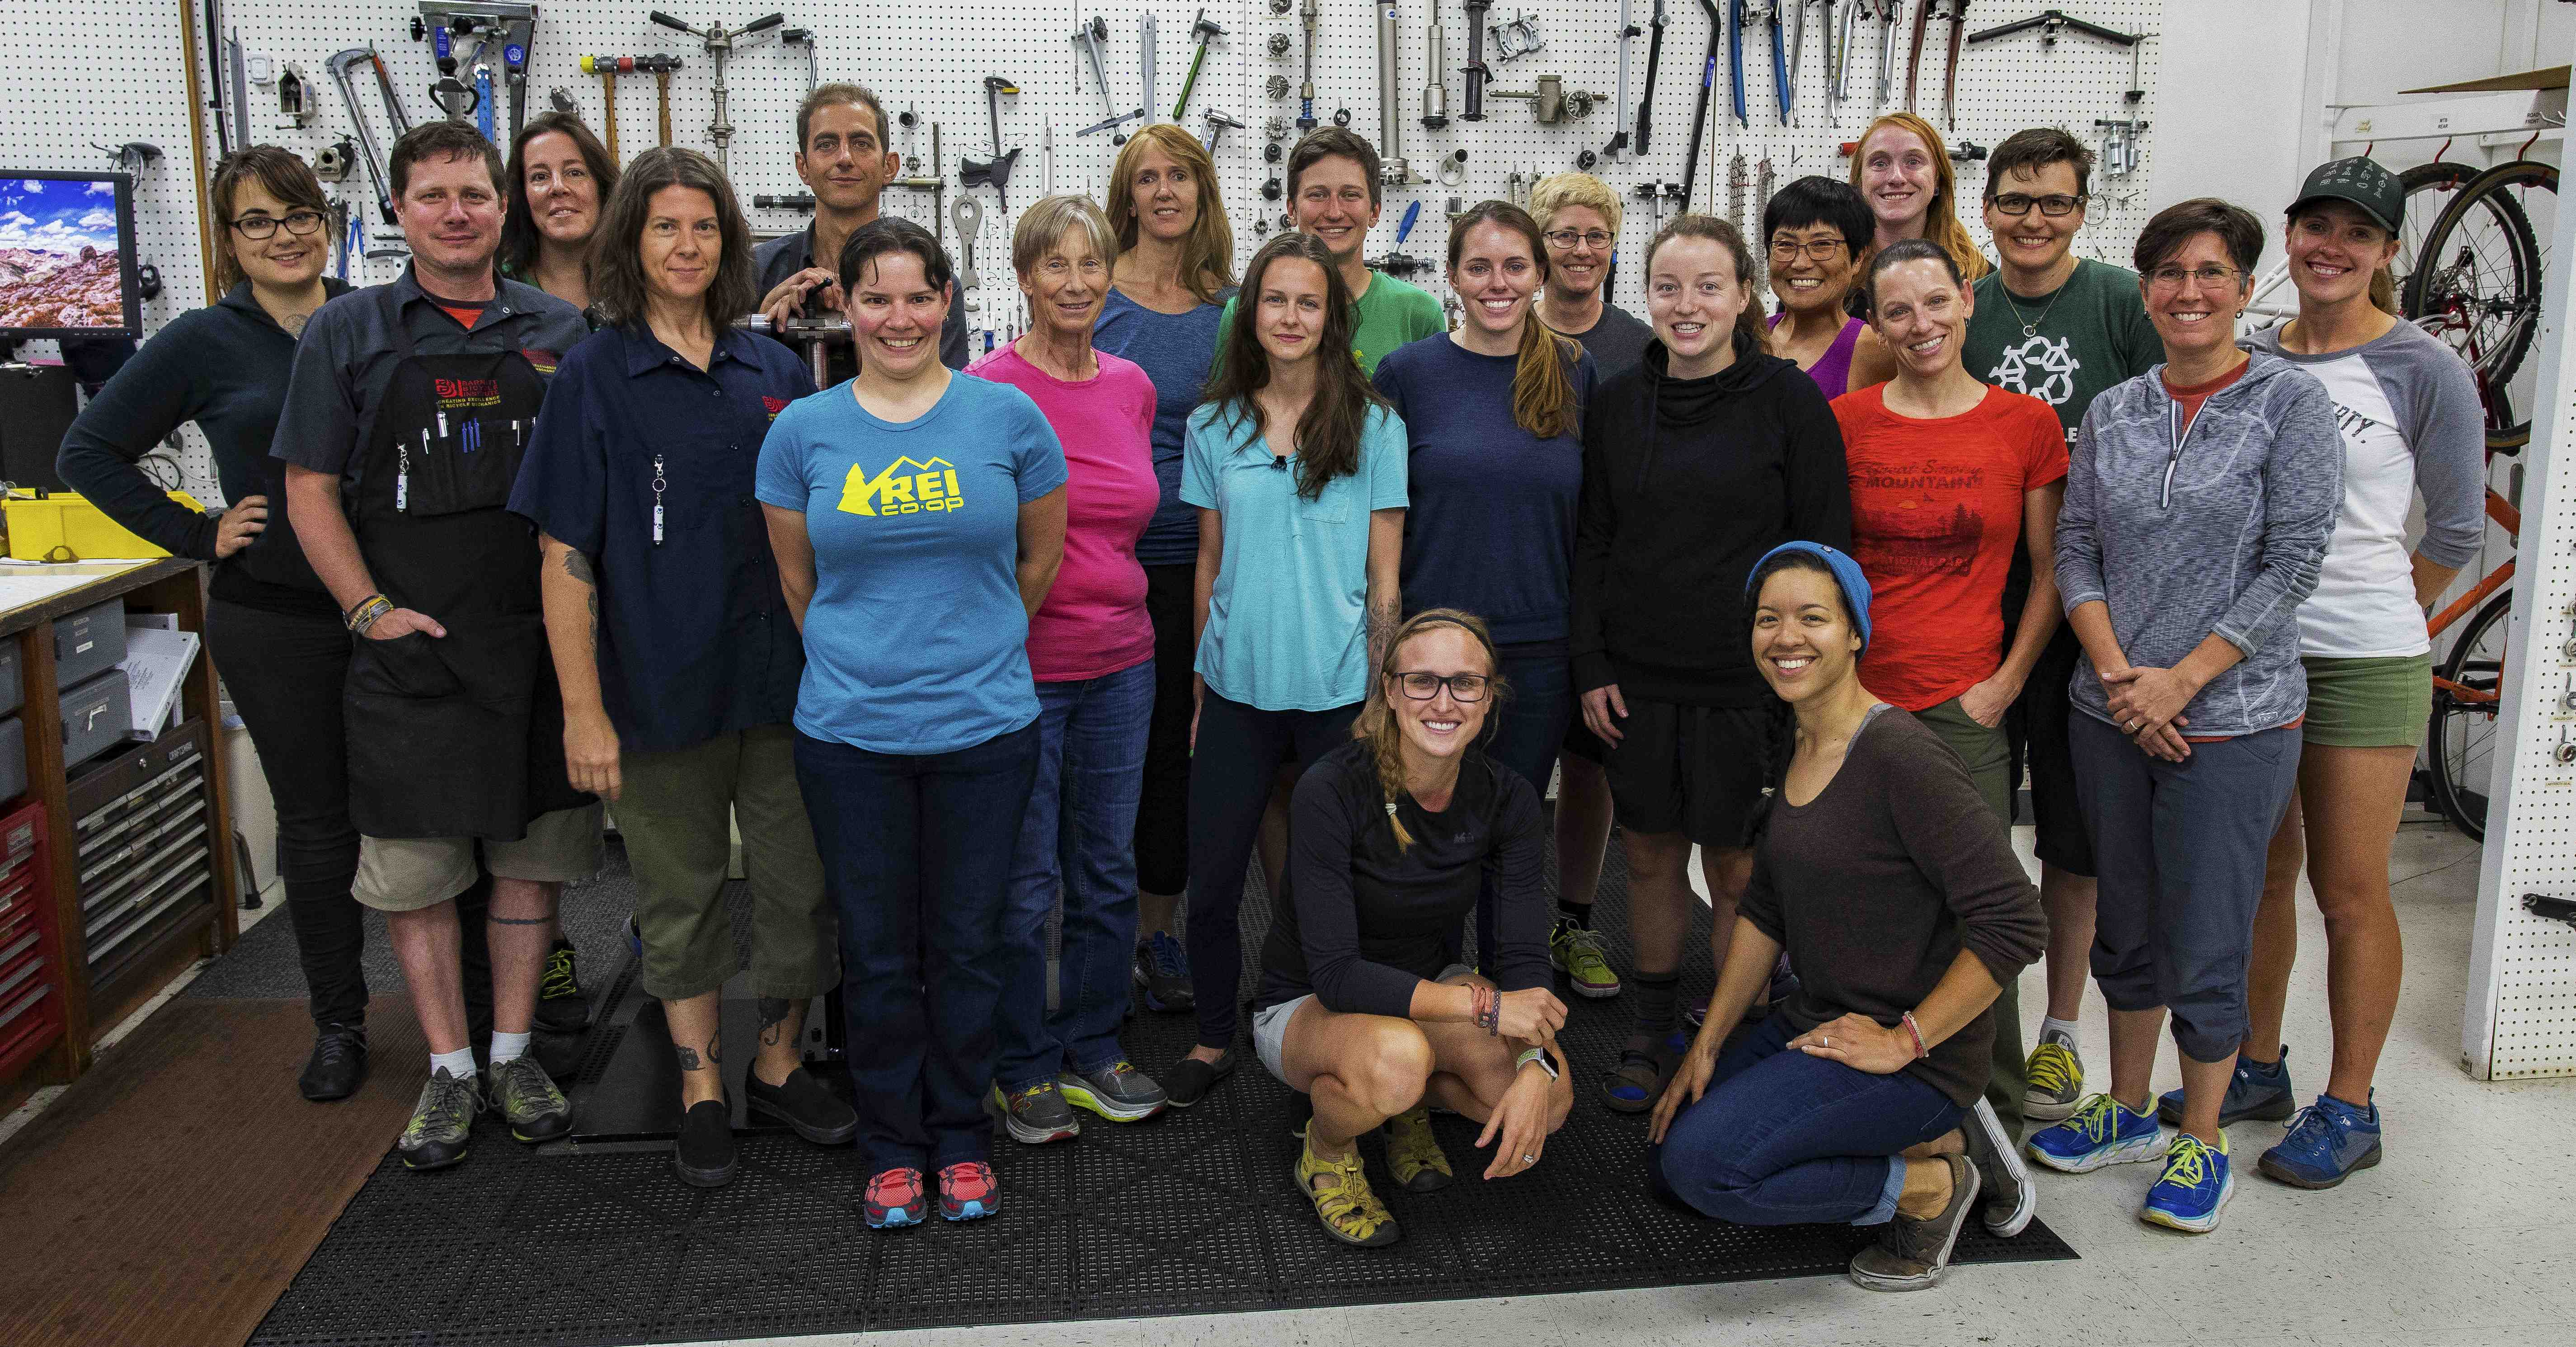 Barnett's Bicycle Institute held its first women's-only class in early August. Sixteen women who work at REI attended the two-week class. Susie Stevens, interviewed for this story, is pictured second from the right, second row from bottom.